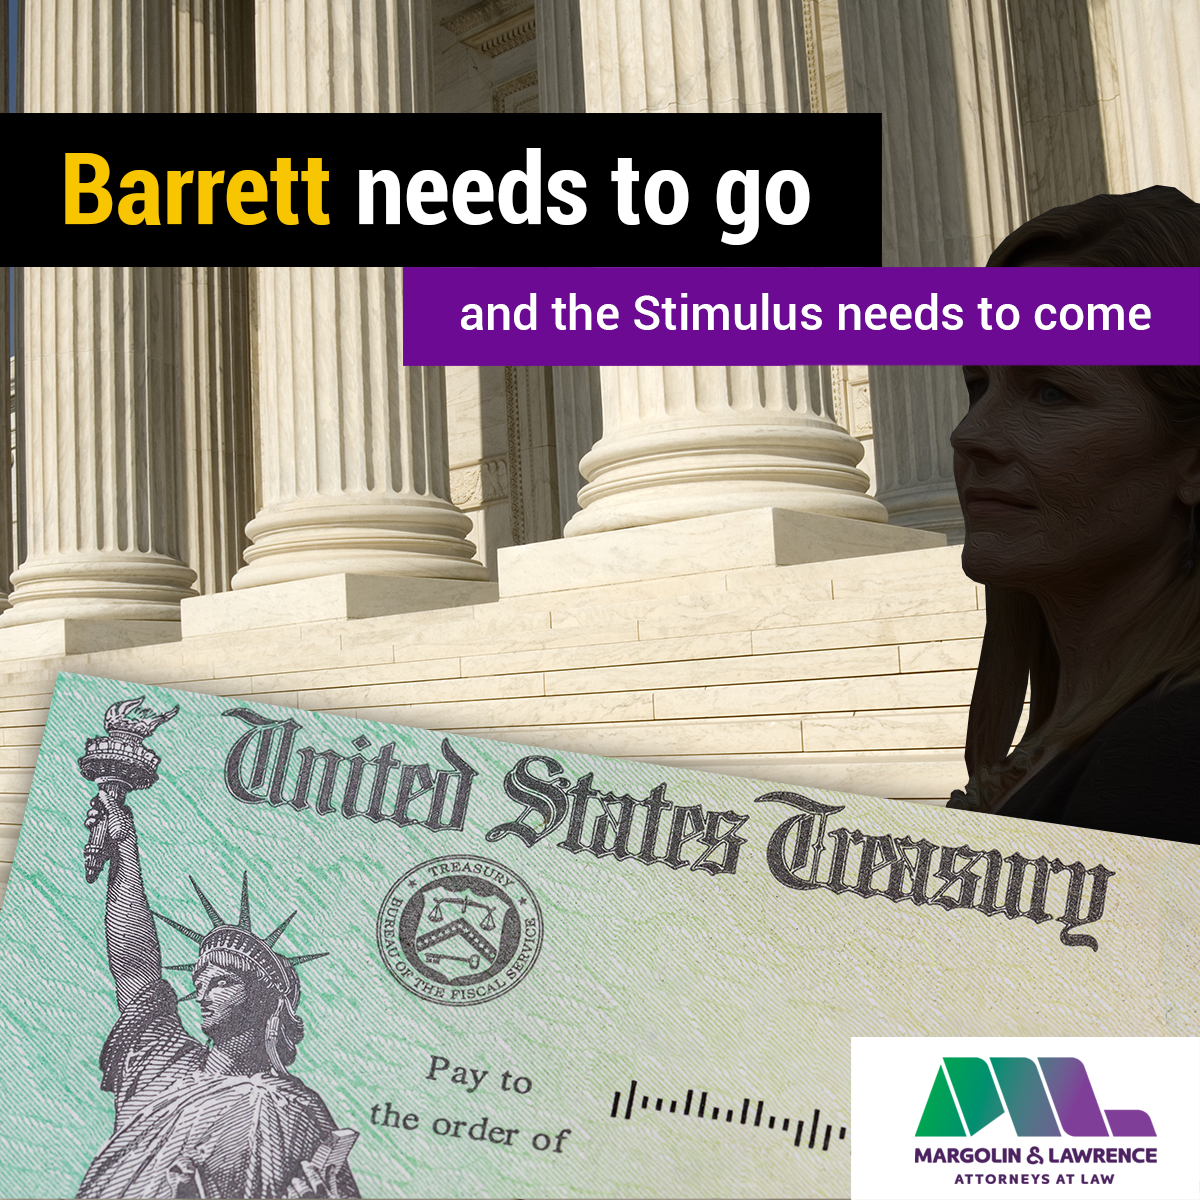 Barrett needs to go, and the Stimulus needs to come